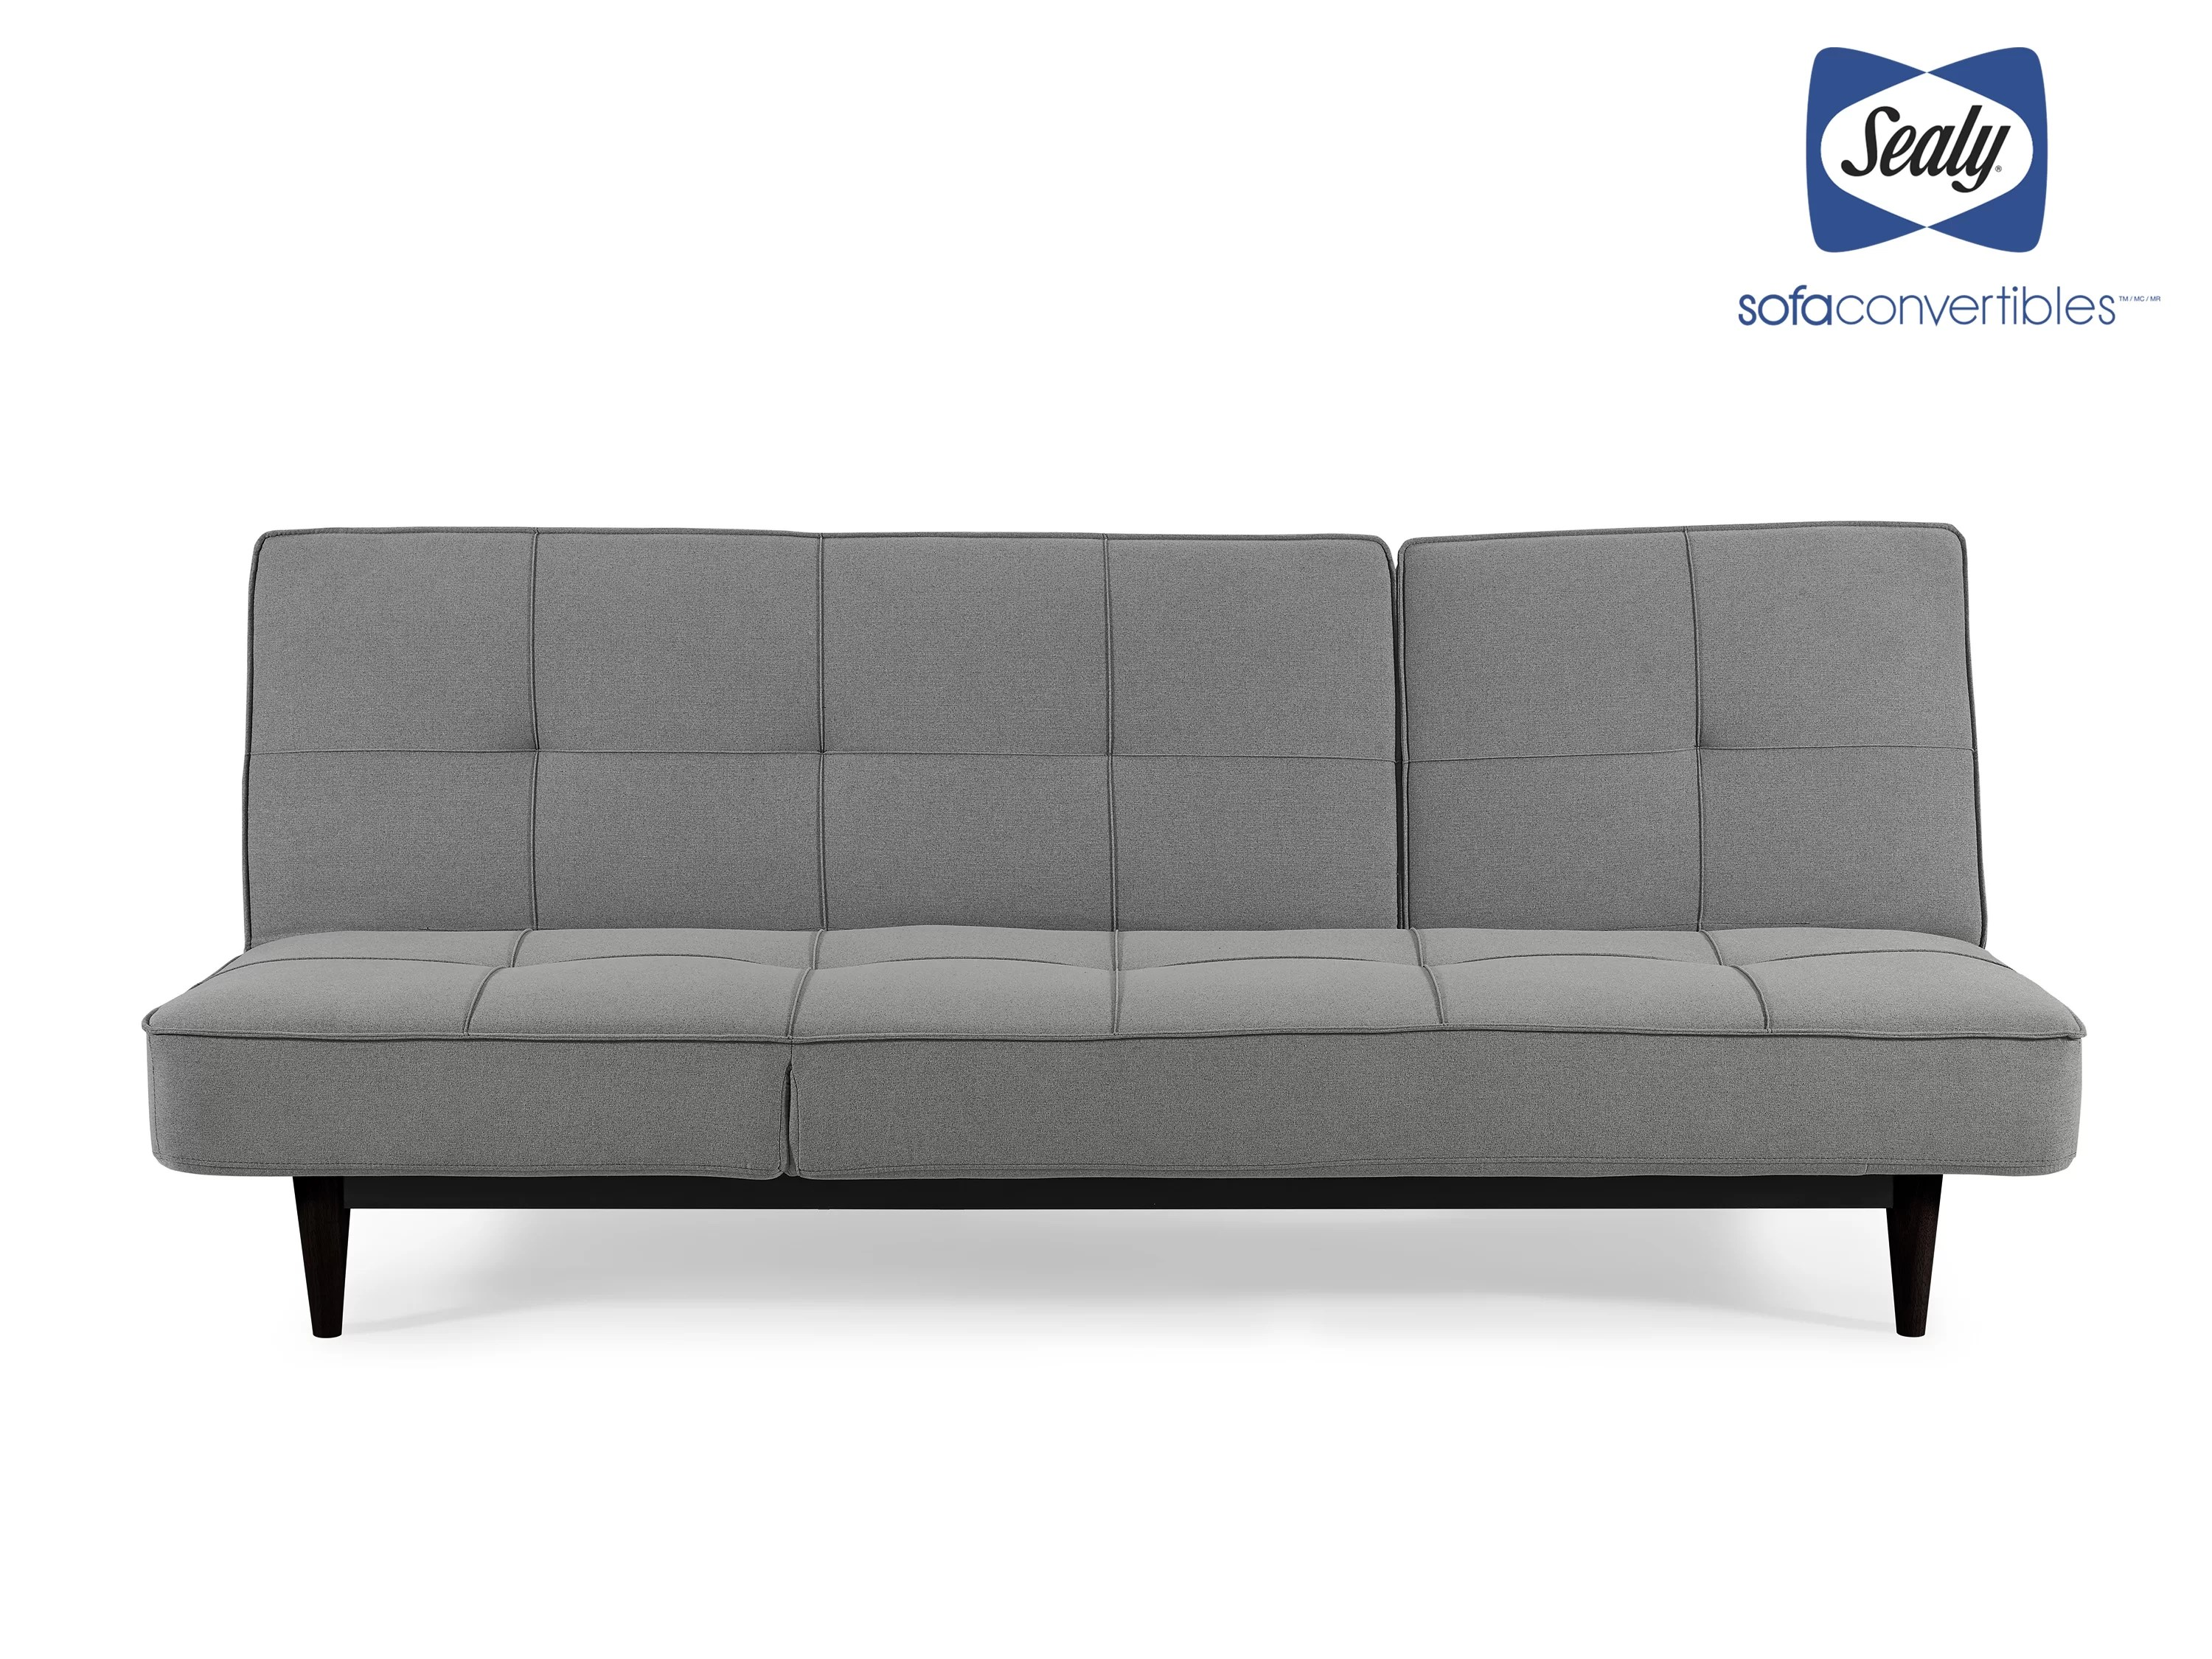 sofa convertibles large 3 seater leather sofas uk sealy victor wayfair ca